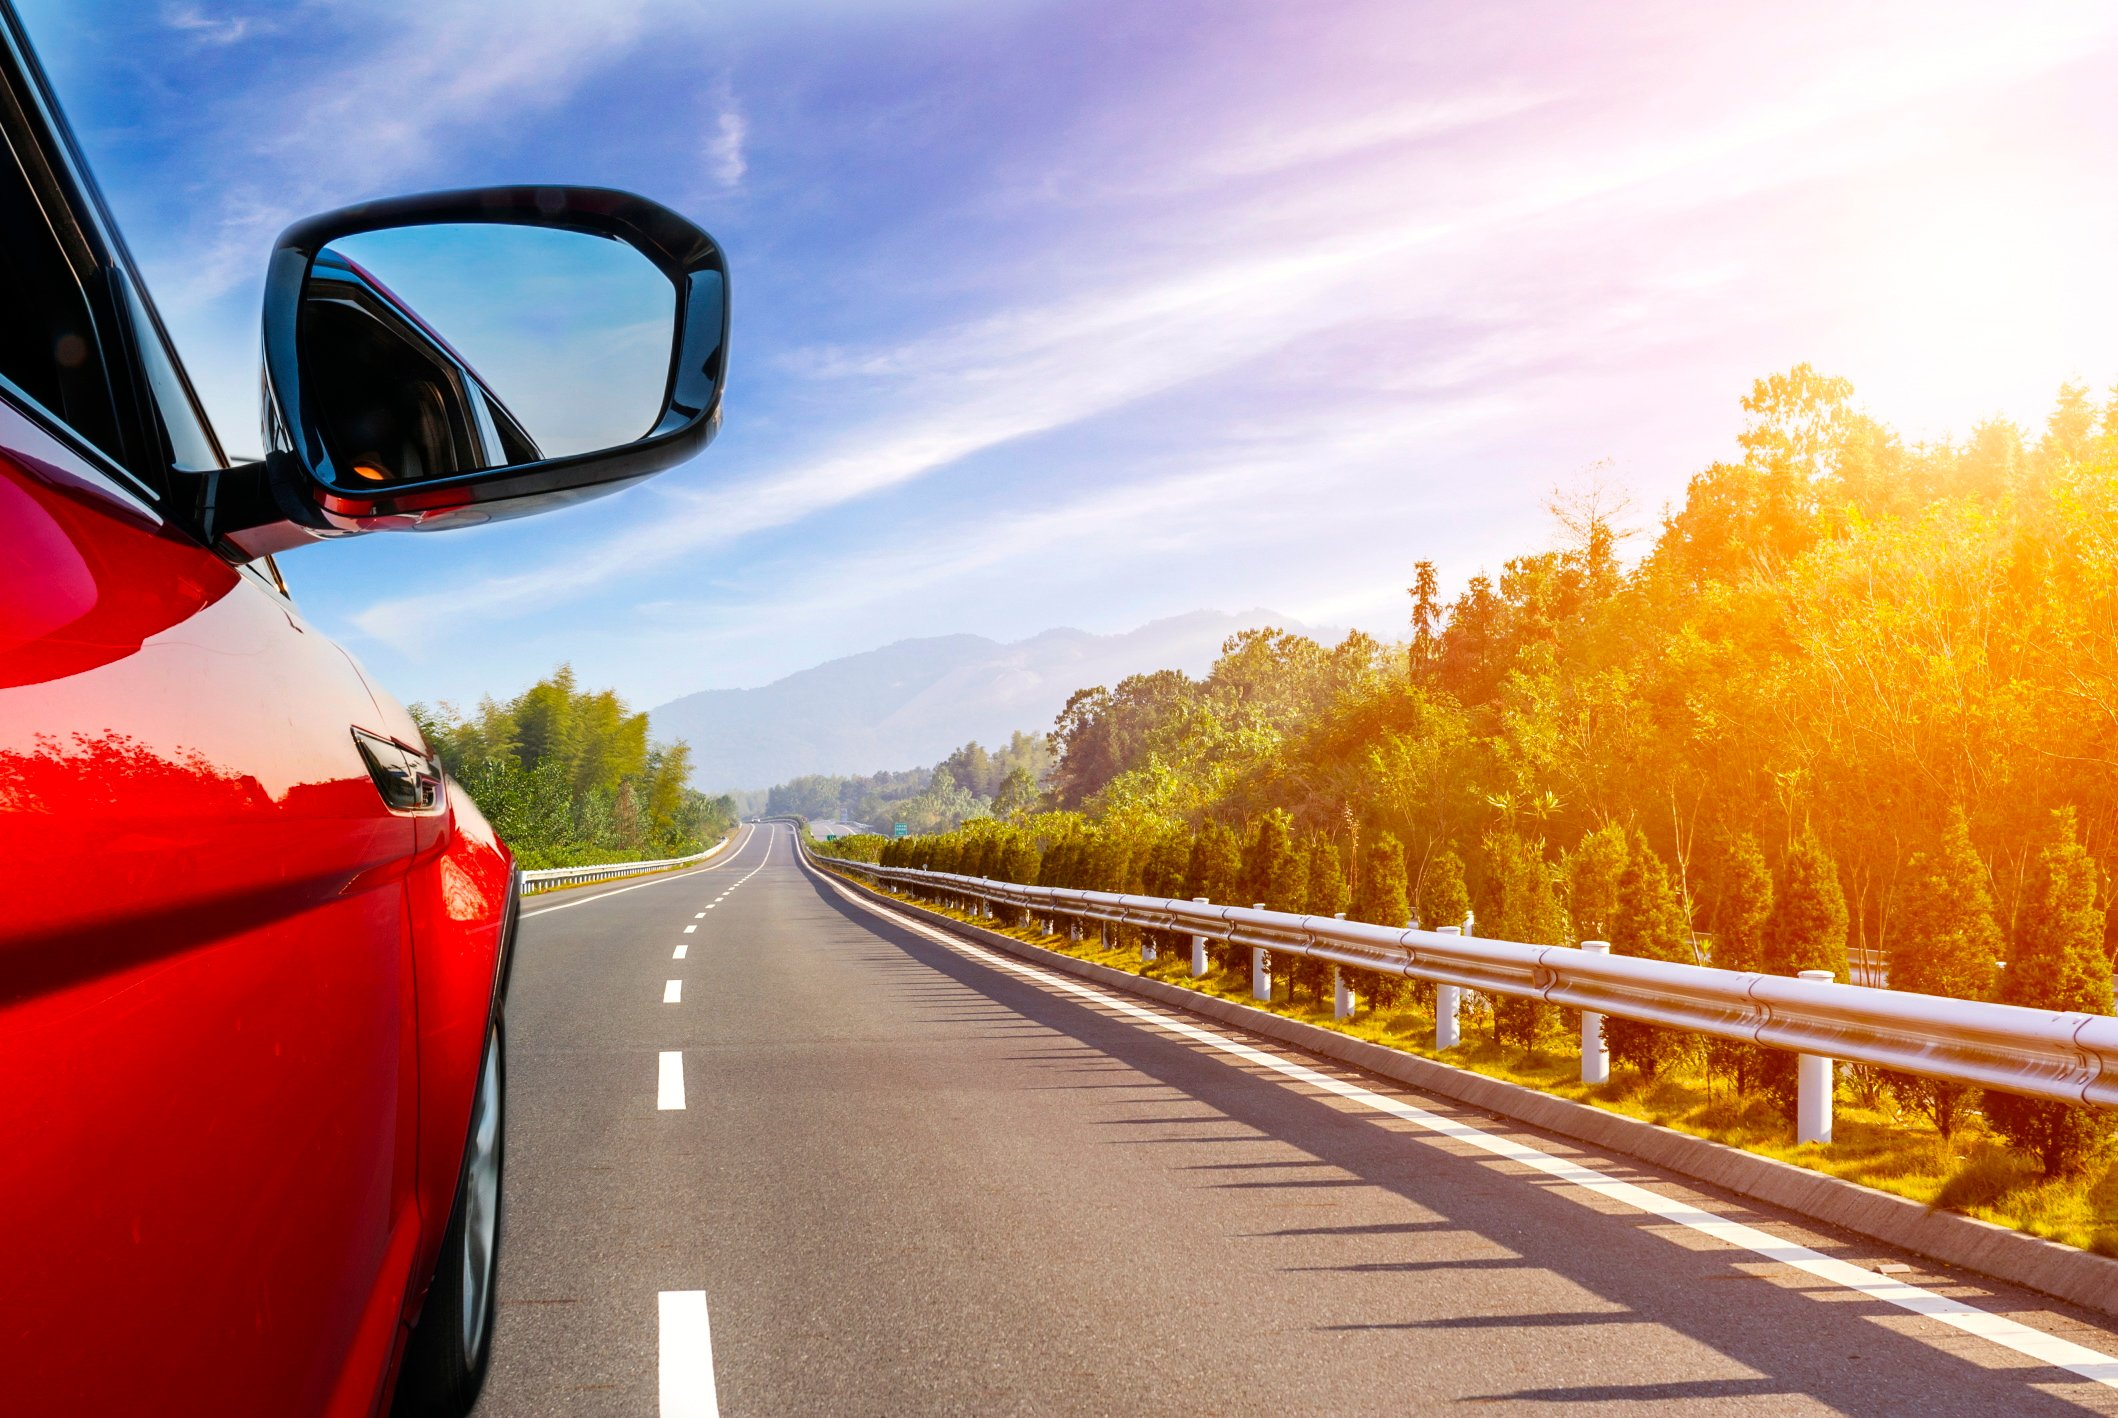 10 Things To Check on Your Car Before Your Summer Road Trip